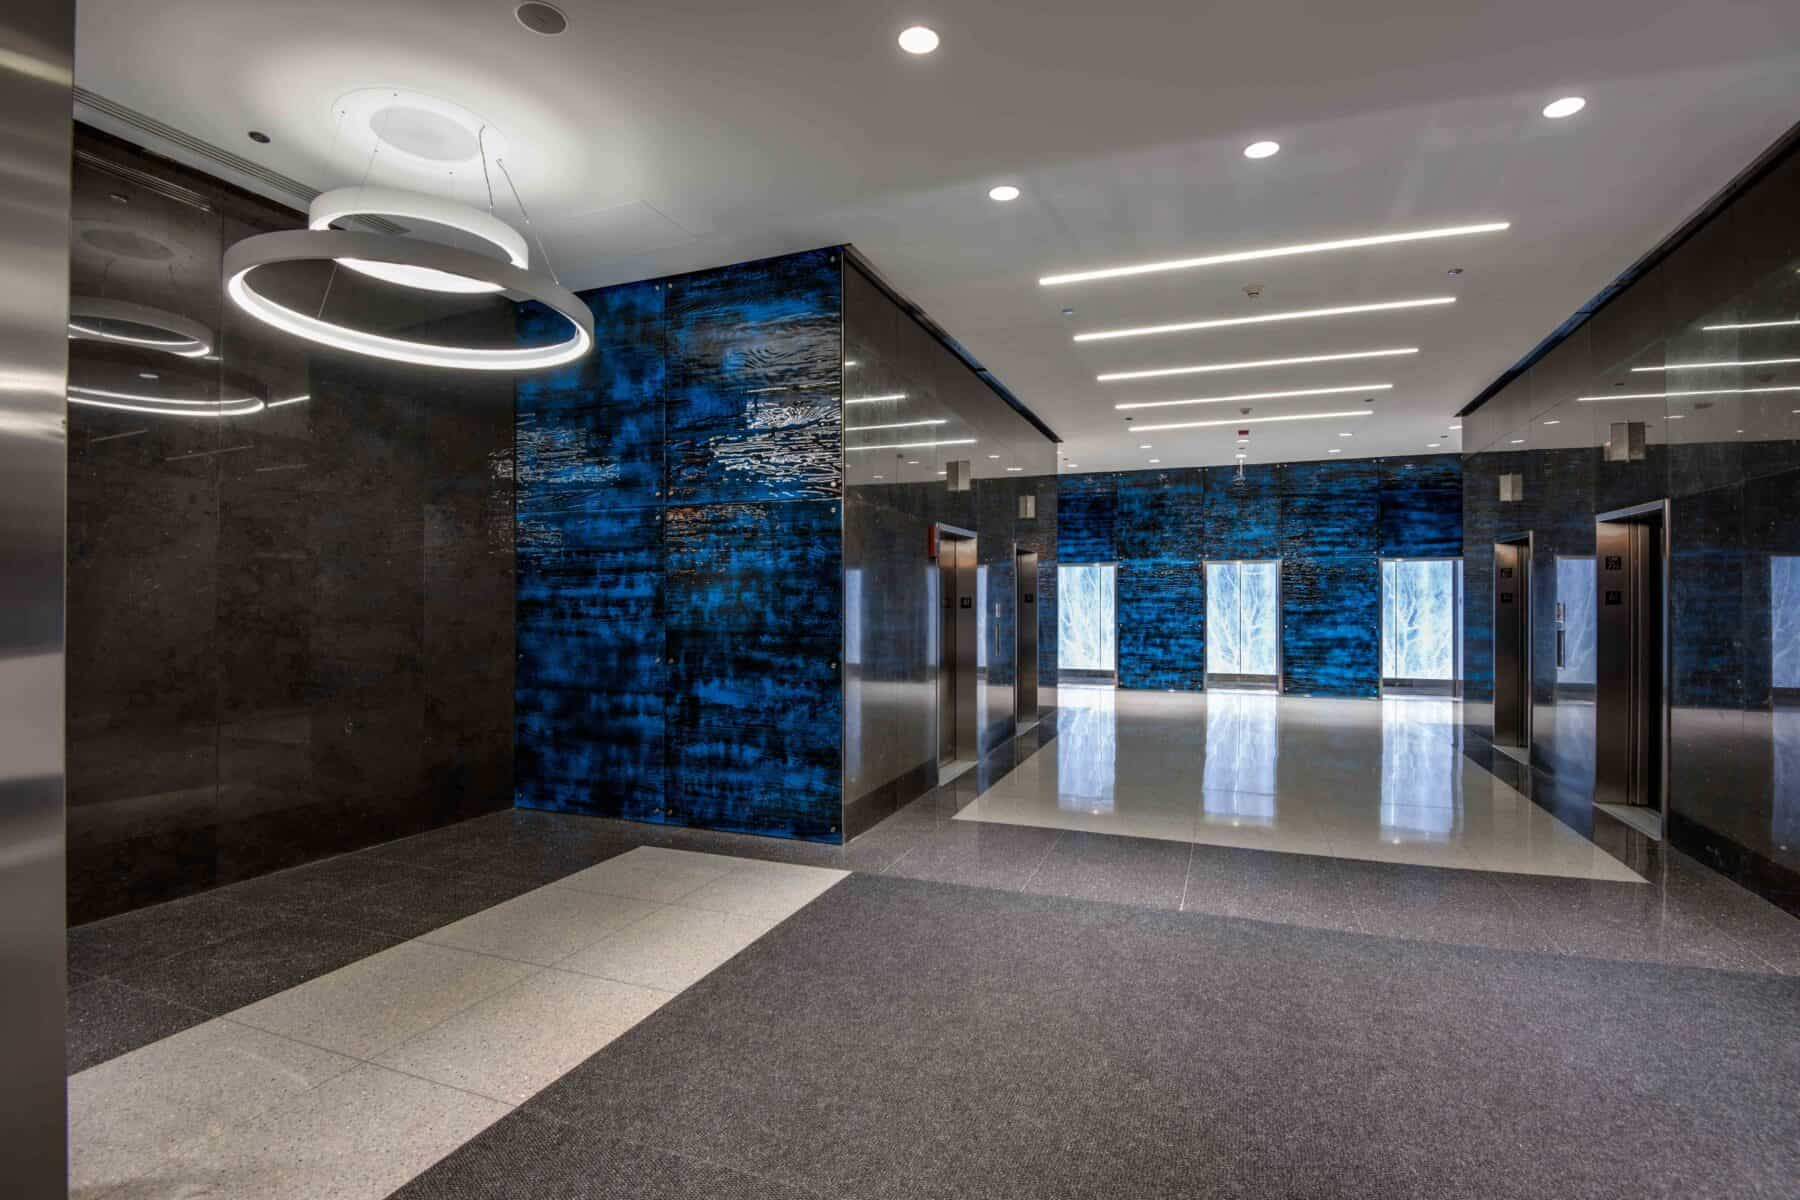 Modern Lobby Remodel with Blue Glass Wall Panels and Suspended LED Lights by Commercial Builder & General Contractor Structural Enterprises